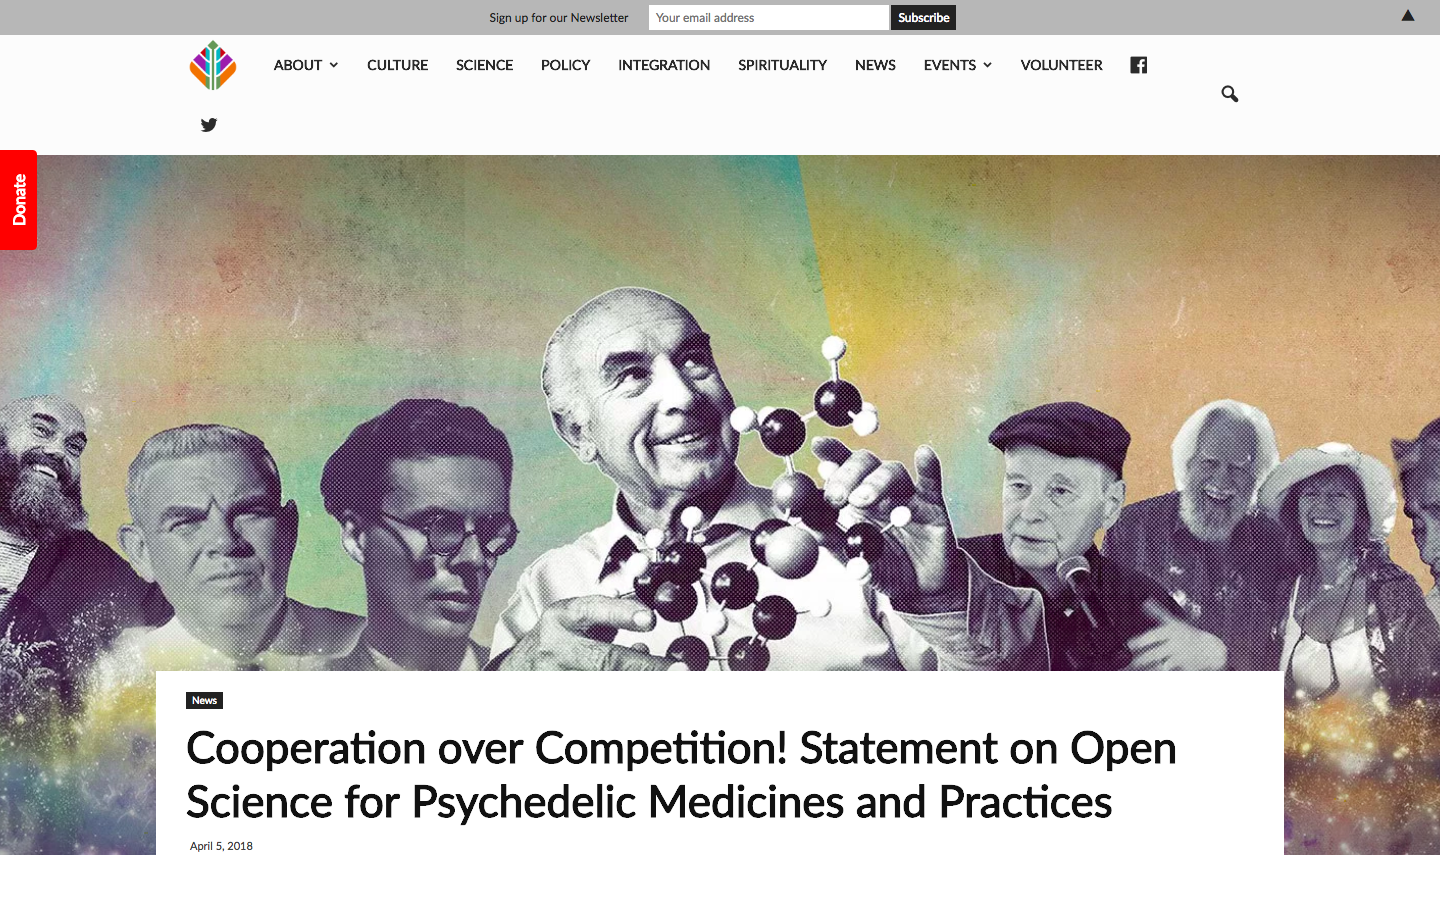 Chacruna |  Cooperation over Competition! Statement on Open Science for Psychedelic Medicines and Practices